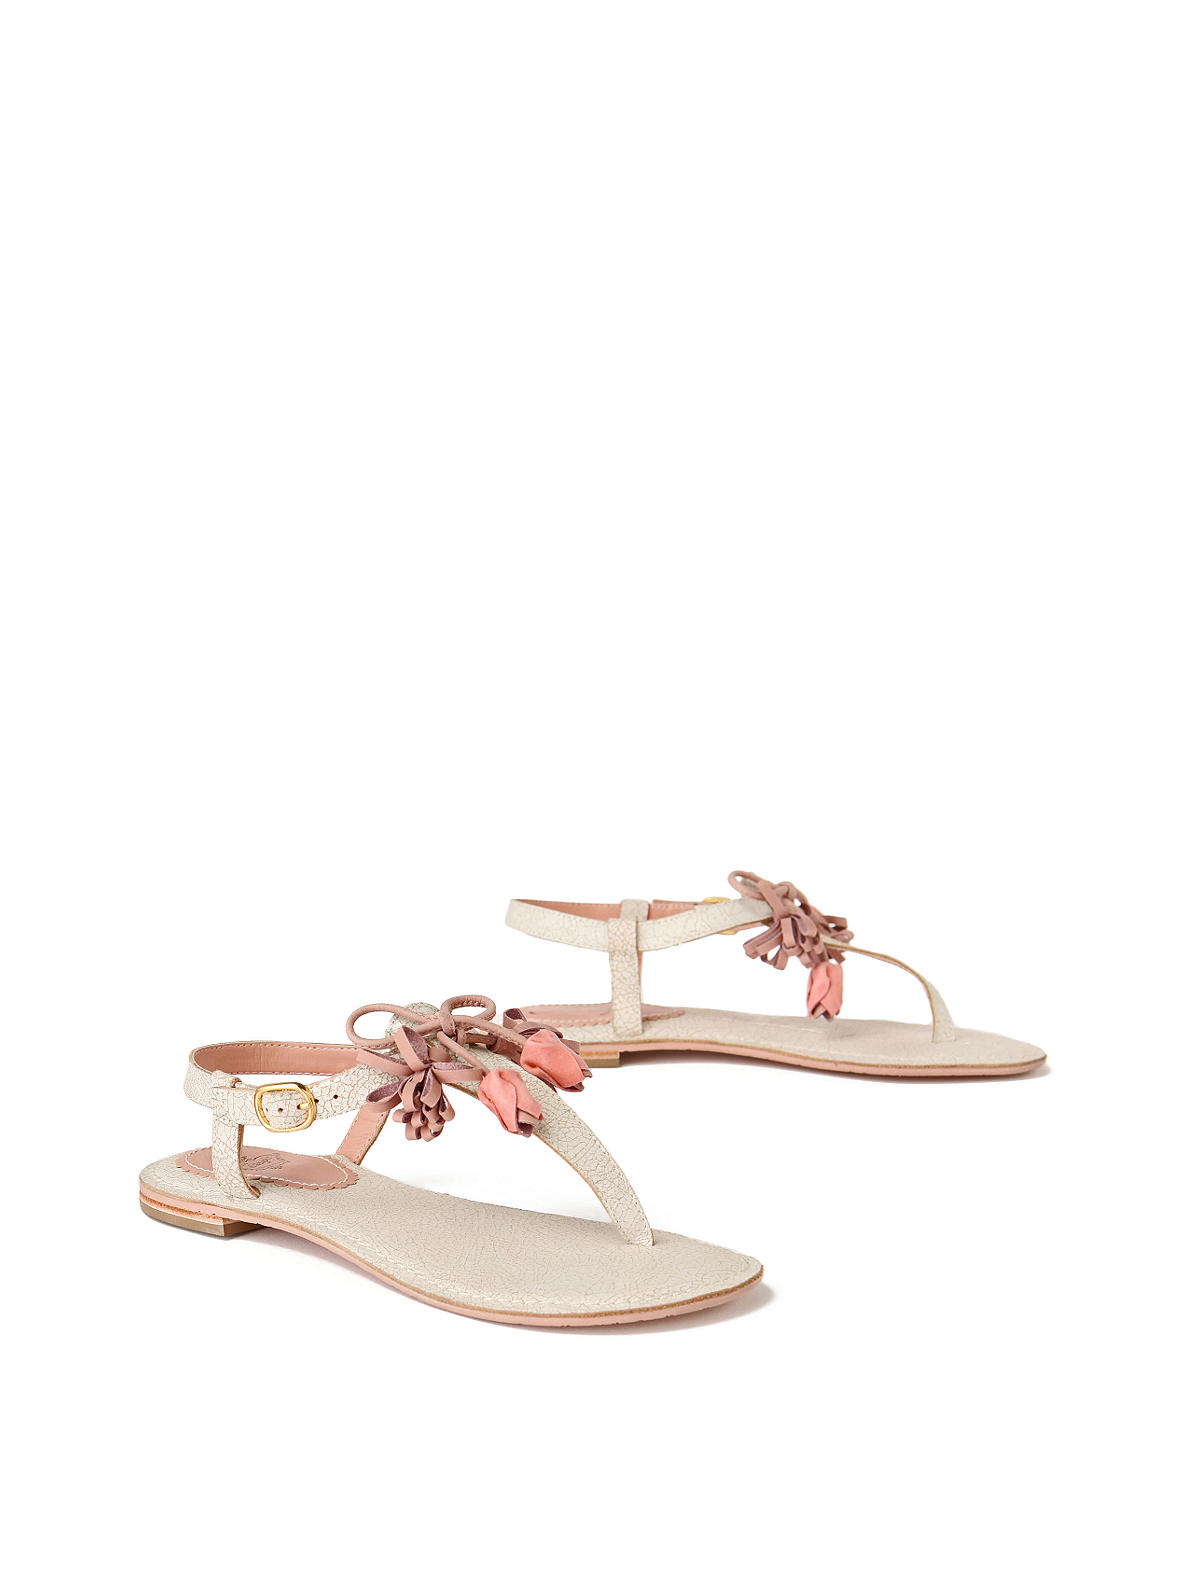 Calappa Thongs - Anthropologie.com from anthropologie.com